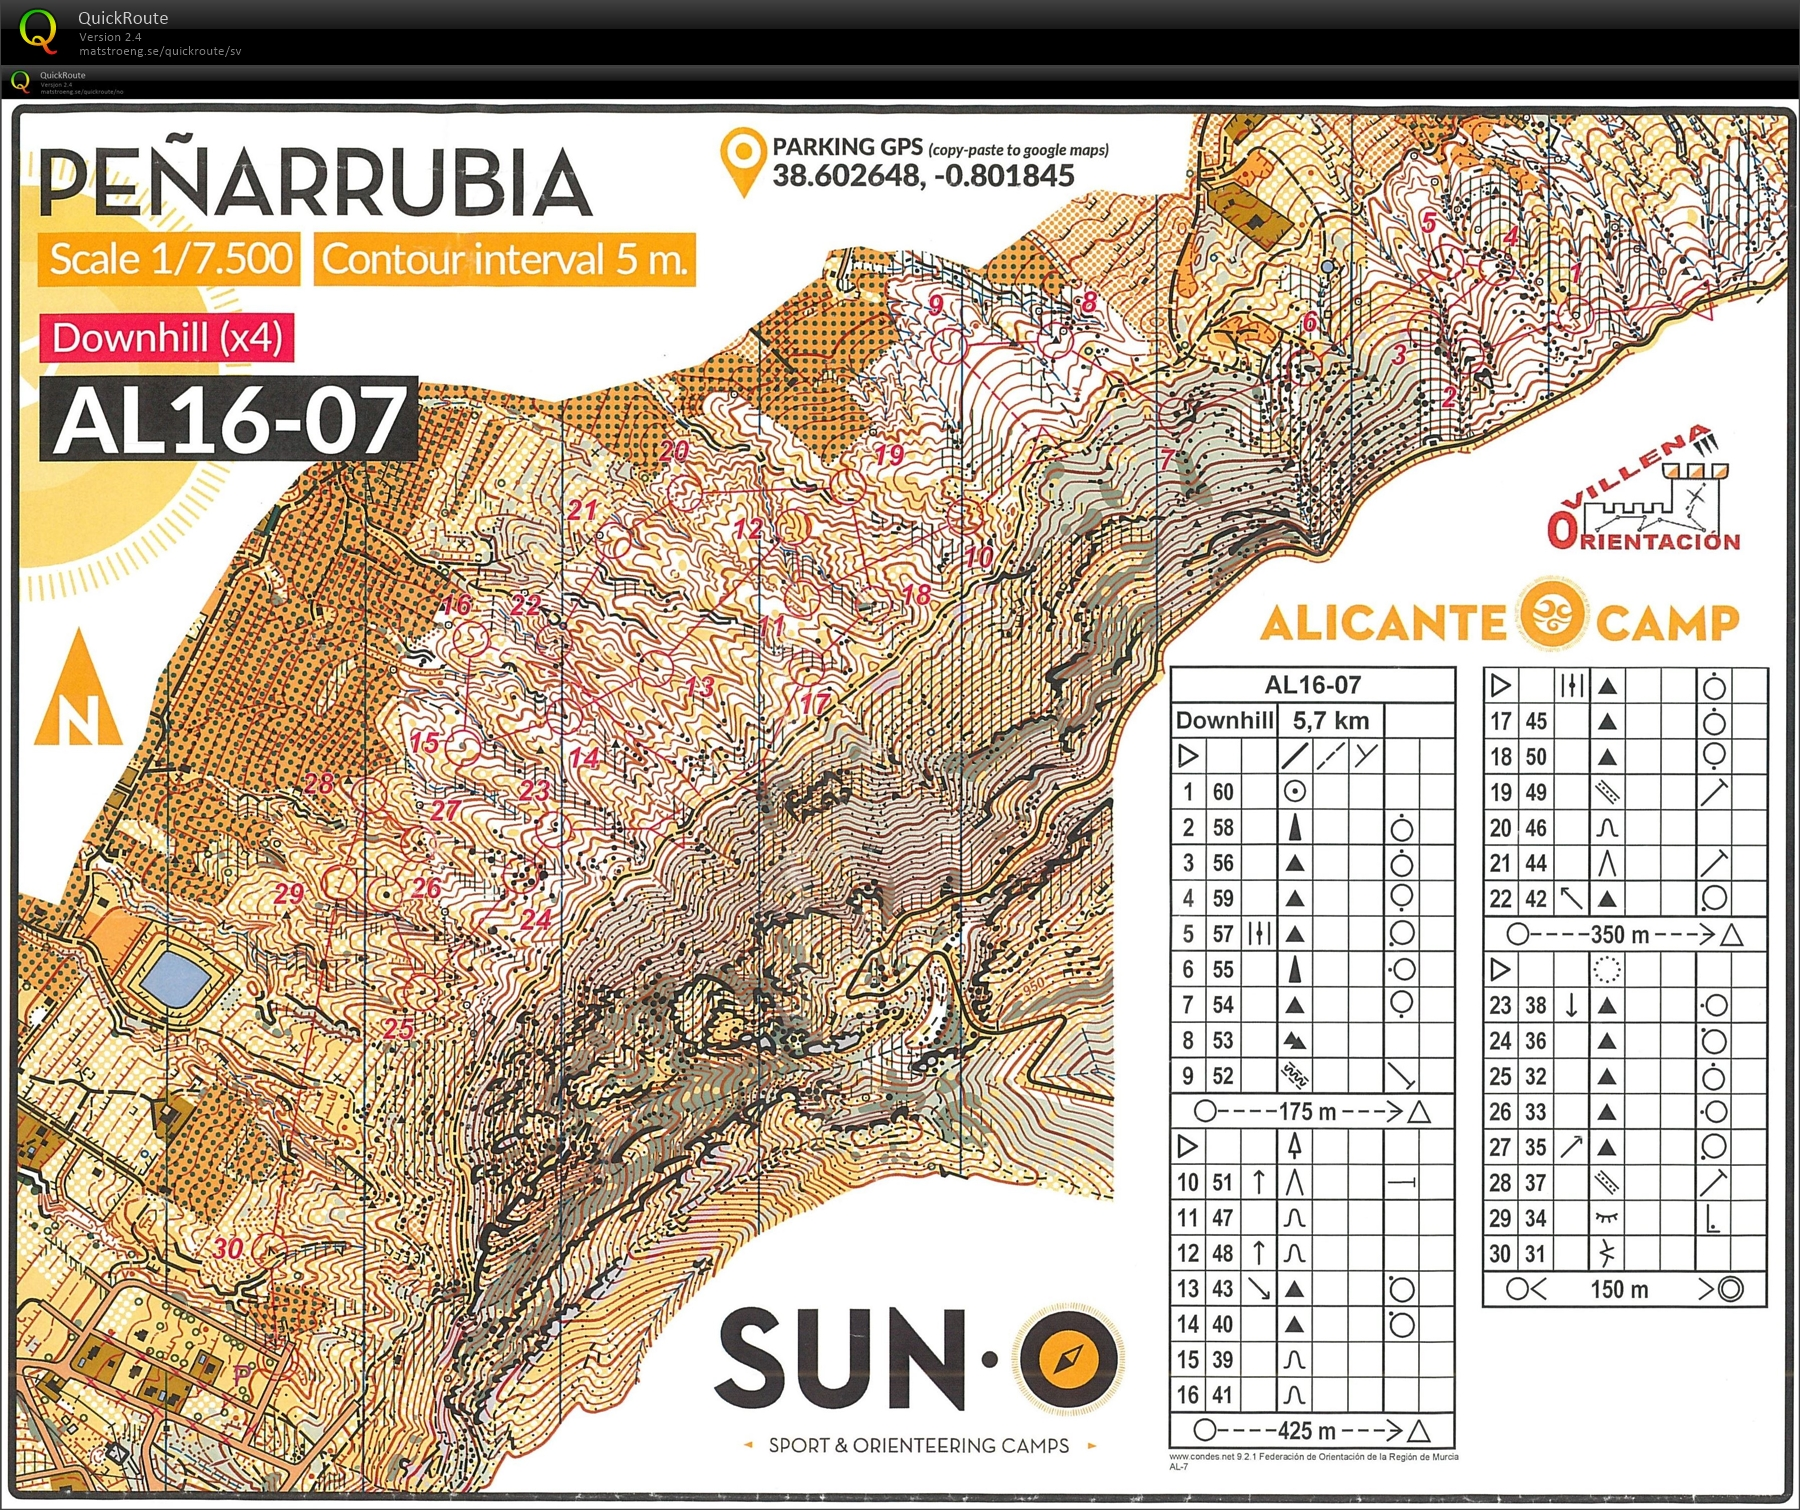 Alicante 17 downhill February 14th 2017 Orienteering Map from